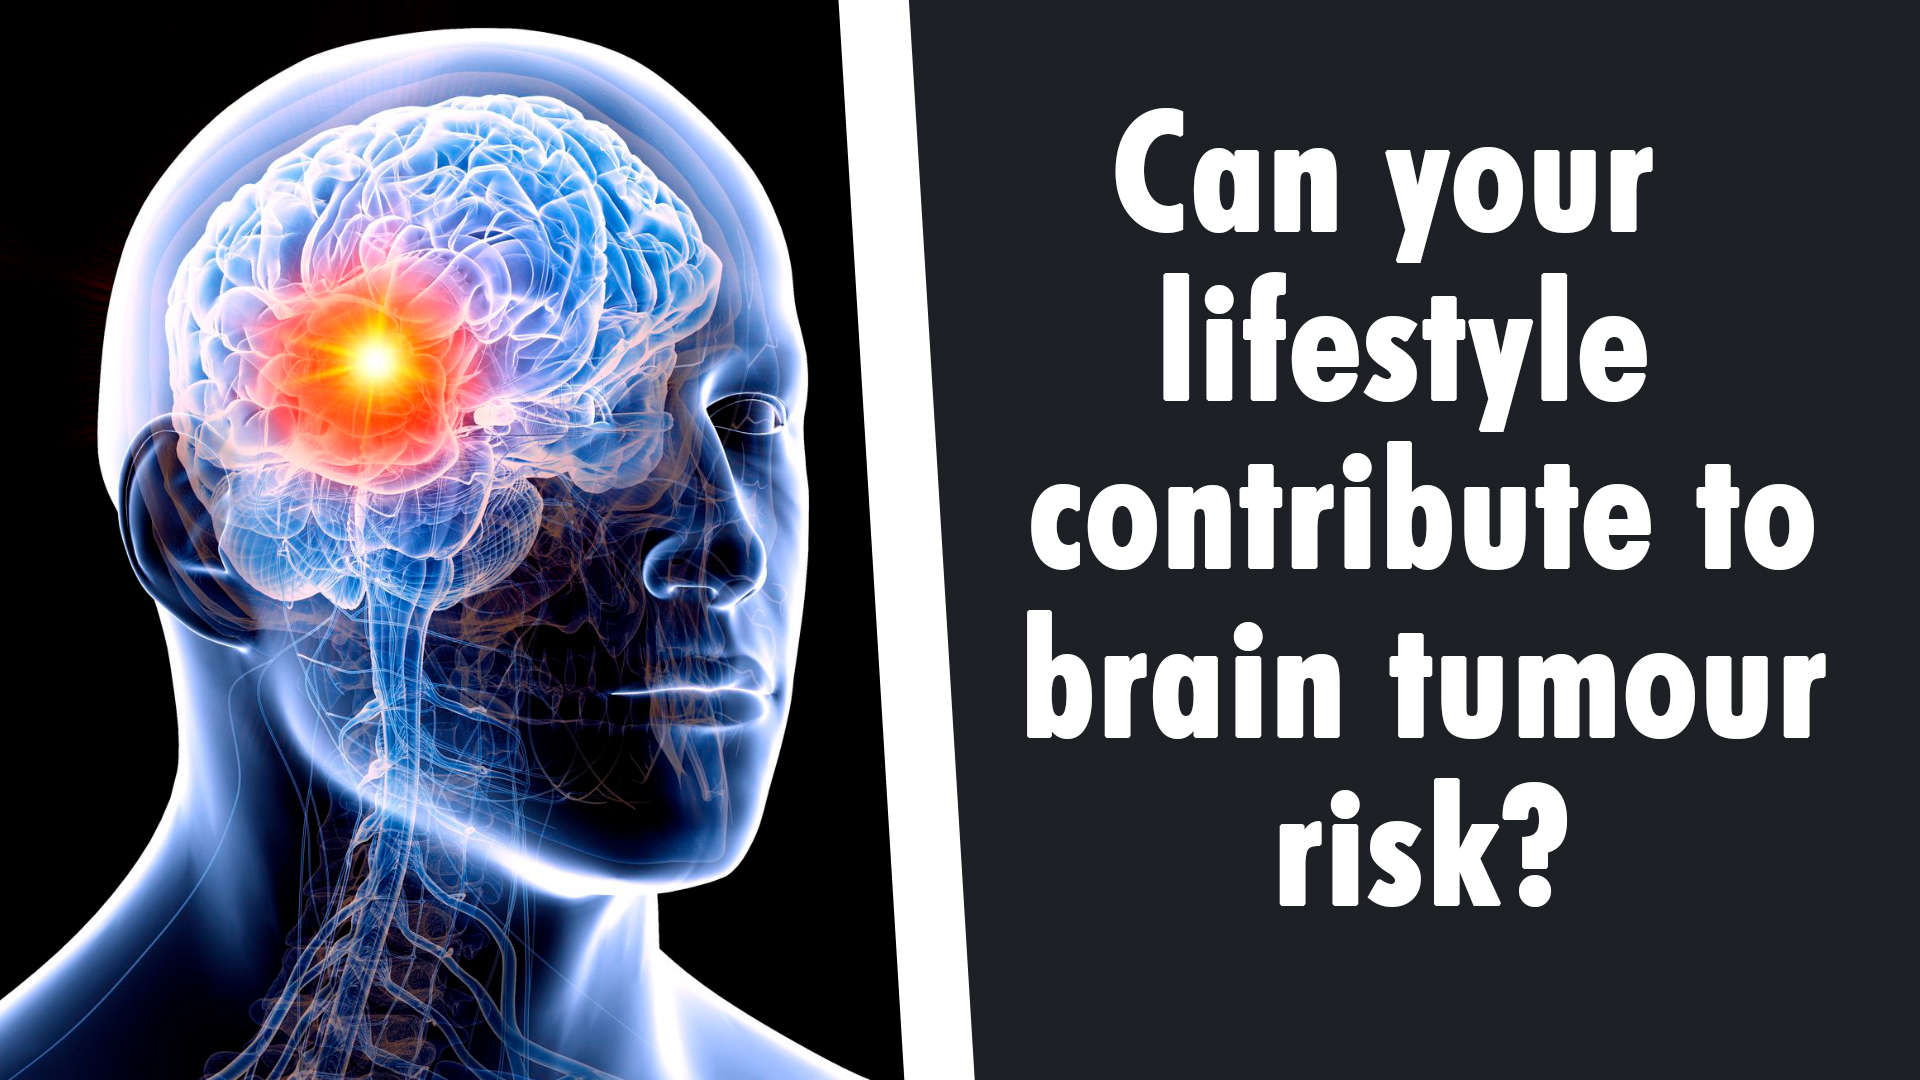 can-your-lifestyle-contribute-to-brain-tumour-risk